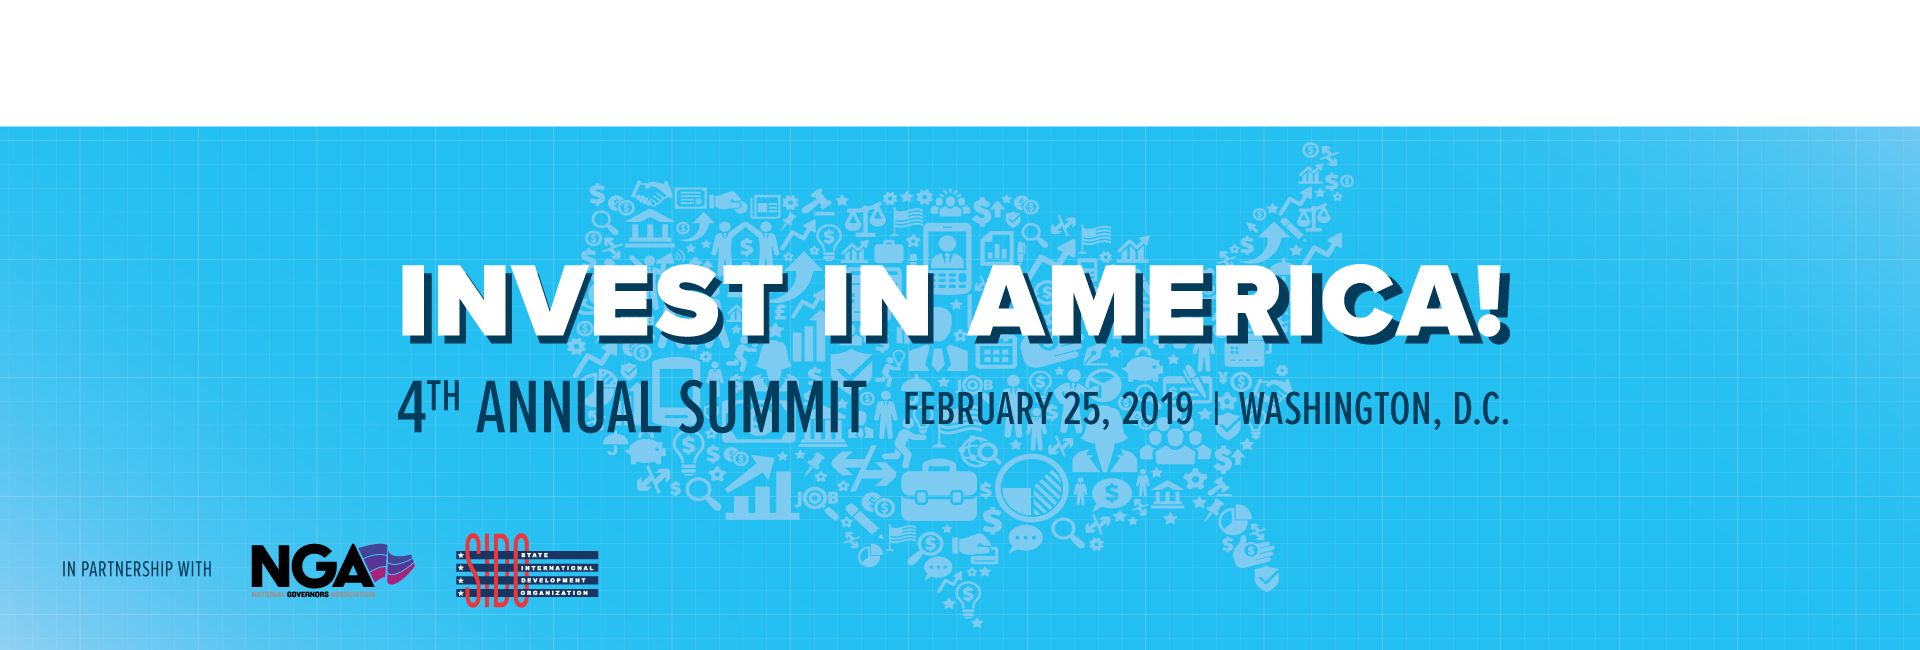 4th Annual Invest in America! Summit